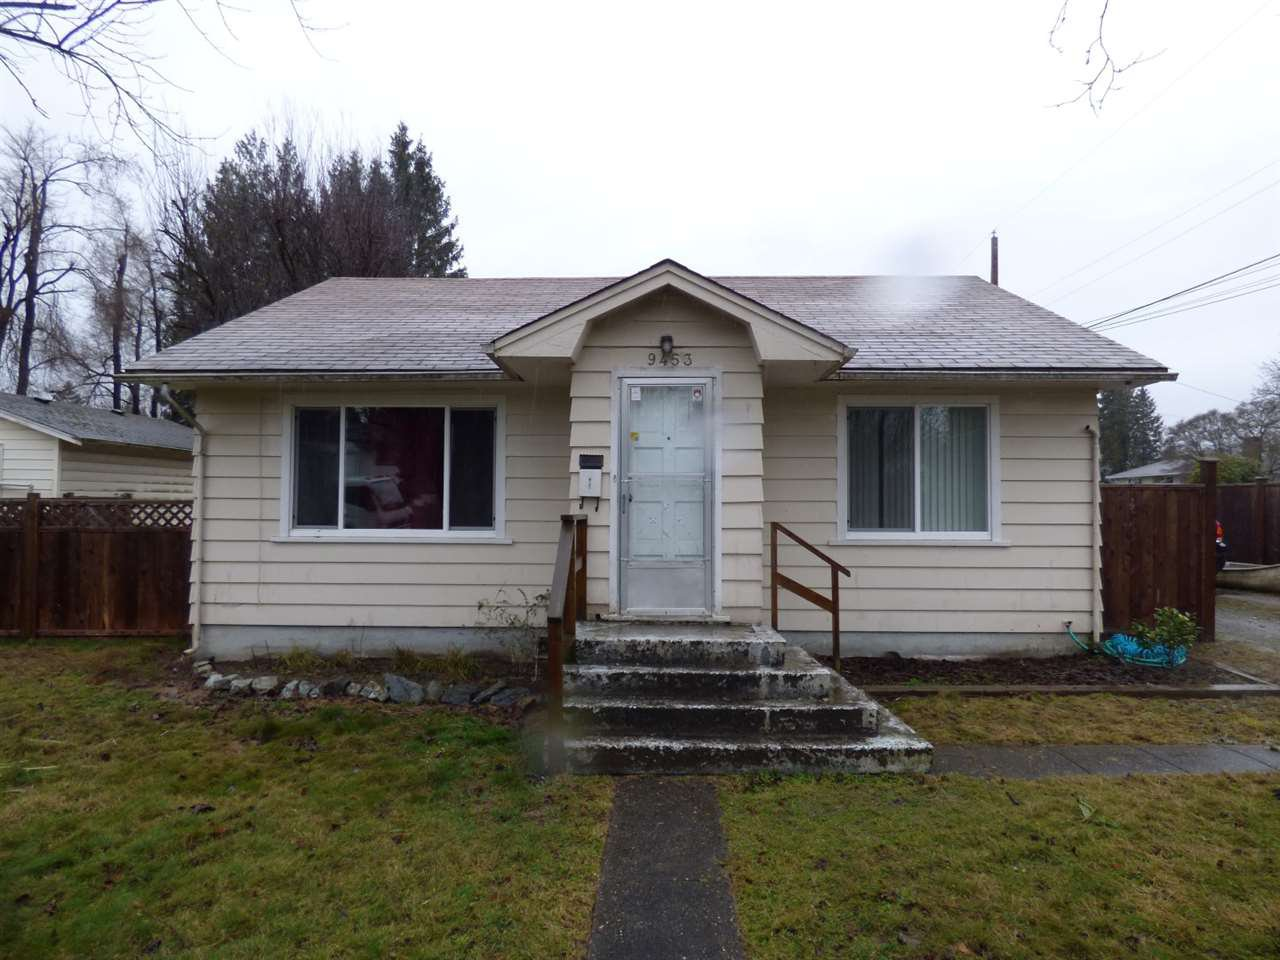 Main Photo: 9453 STANLEY Street in Chilliwack: Chilliwack N Yale-Well House for sale : MLS®# R2235820